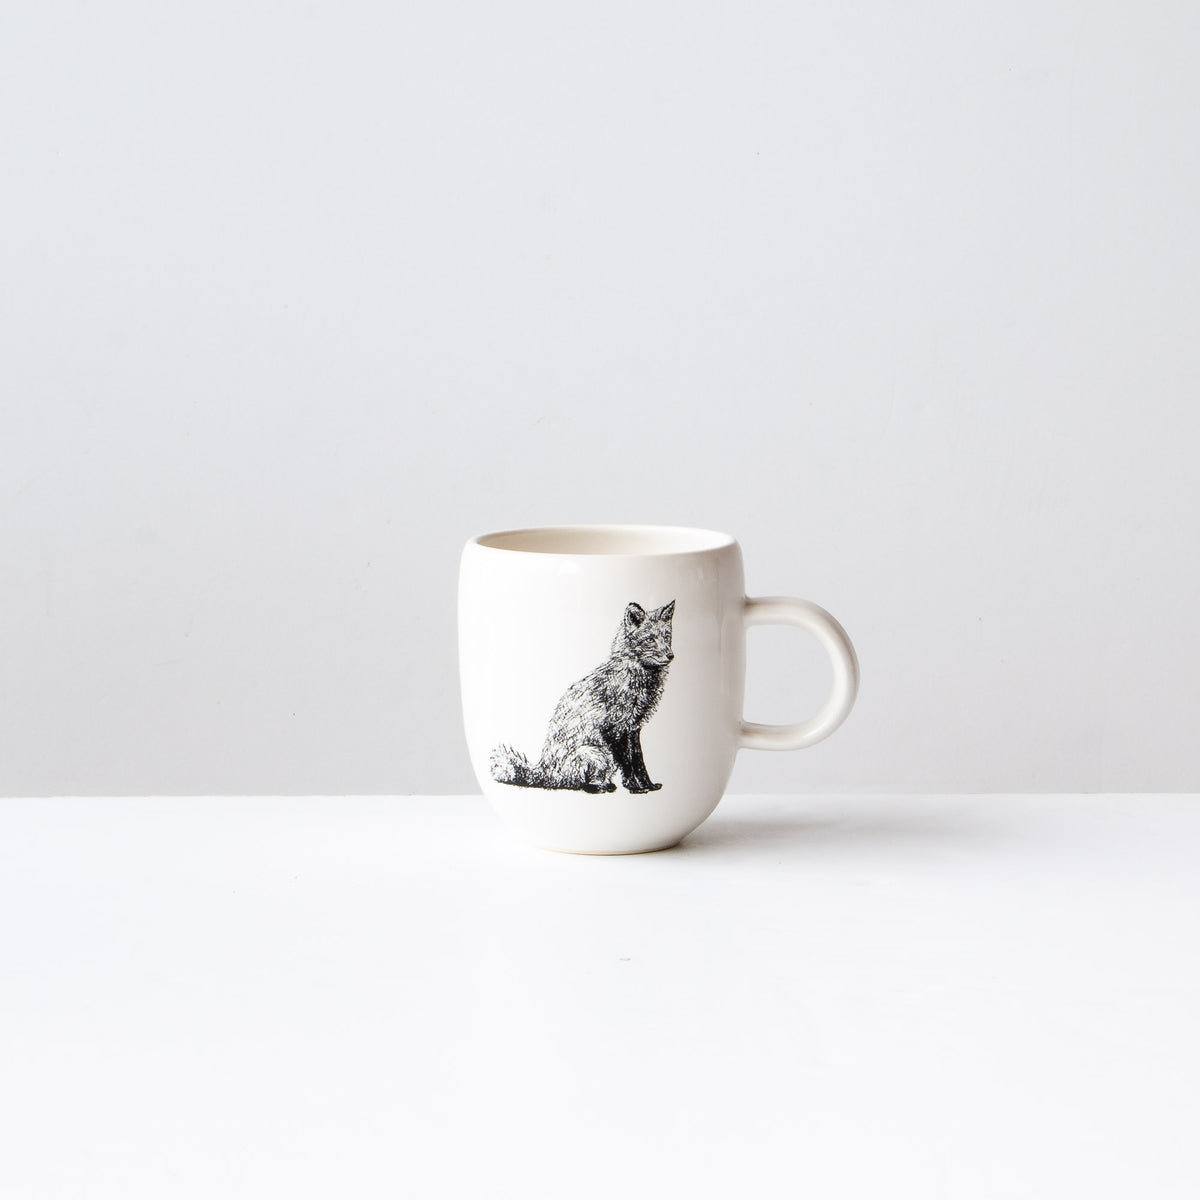 Red Fox - Handmade Porcelain Coffee Mug - Sold by Chic & Basta